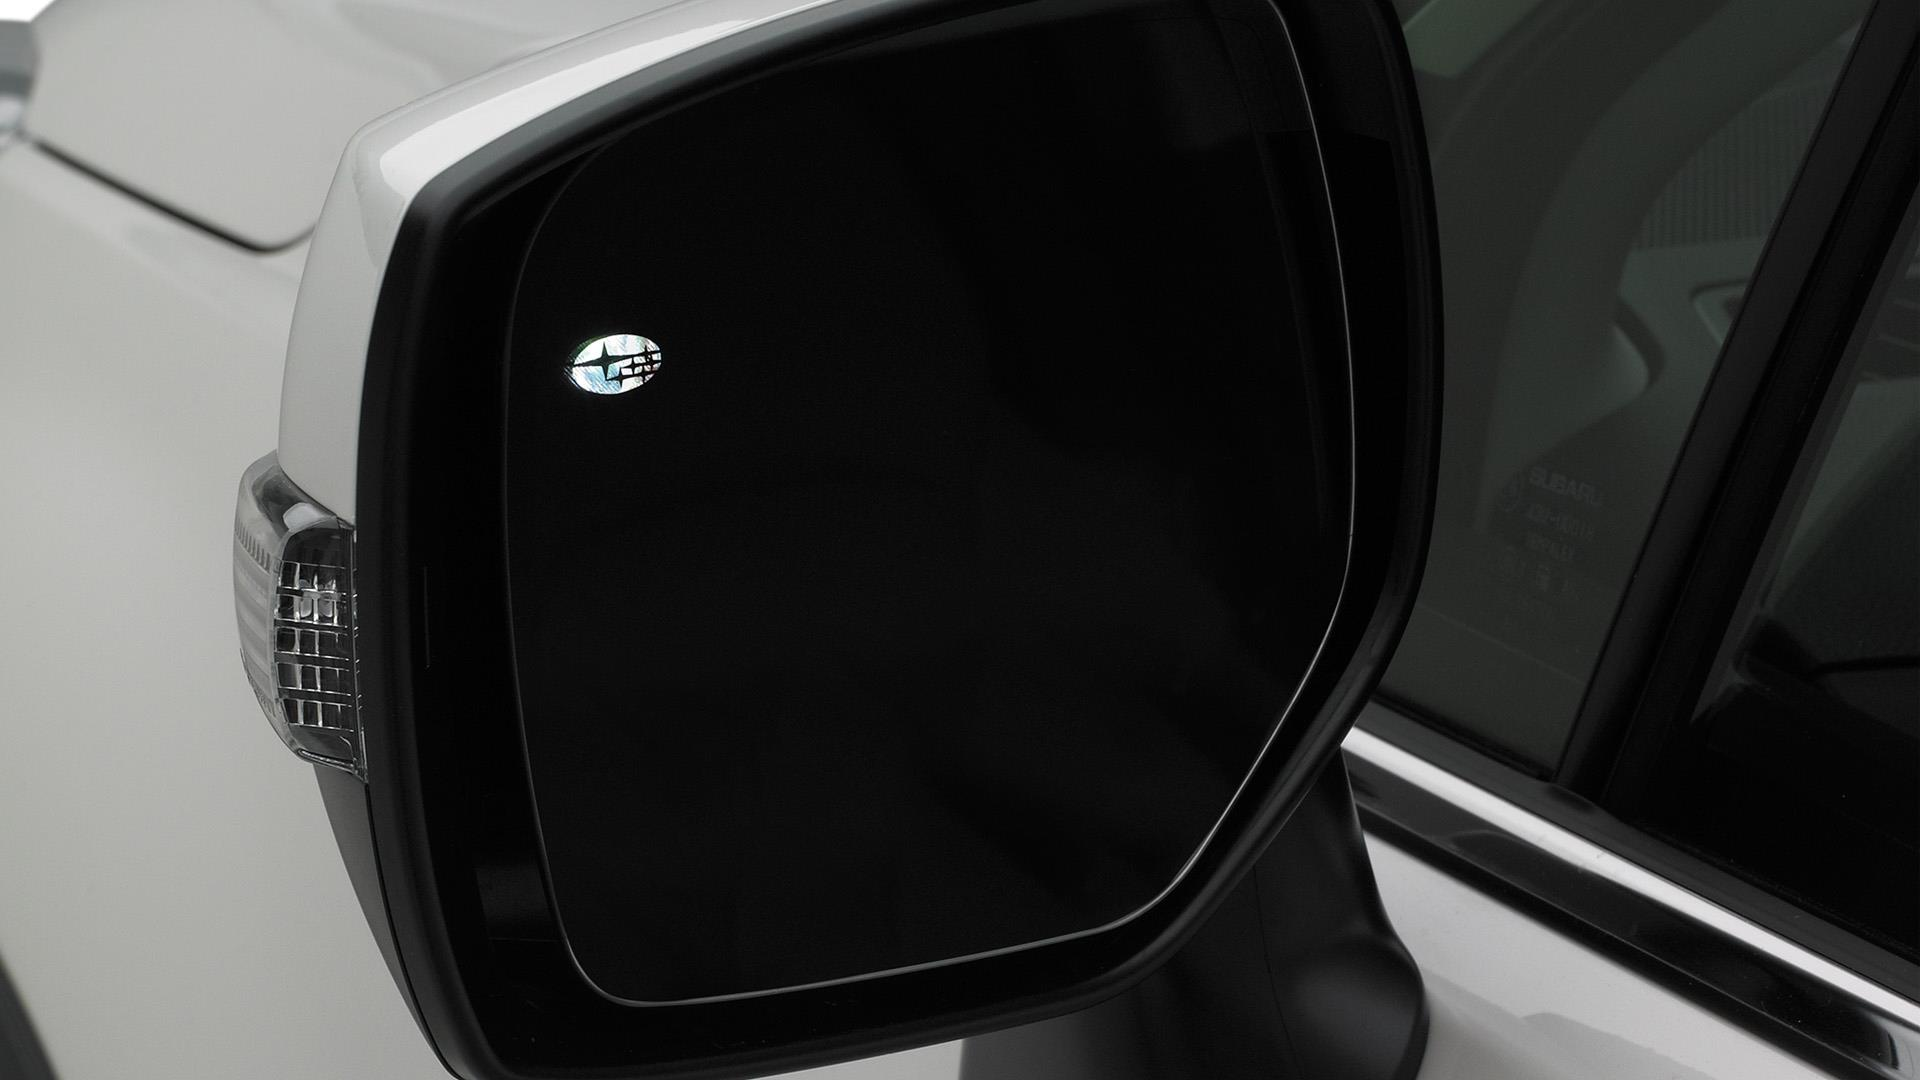 2018 subaru forester auto dimming exterior mirror with approach light for blind spot detection. Black Bedroom Furniture Sets. Home Design Ideas